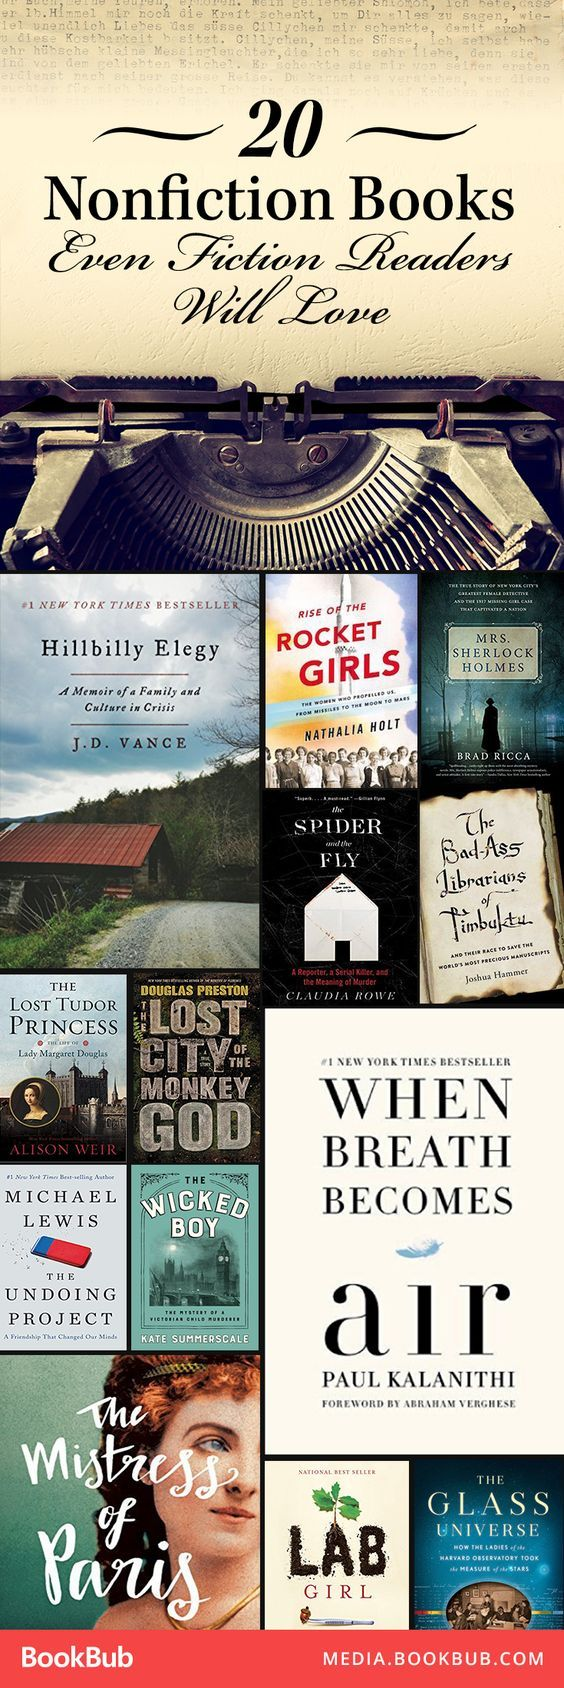 These nonfiction books feature true stories, including historical books about the Tudors and modern memoirs.